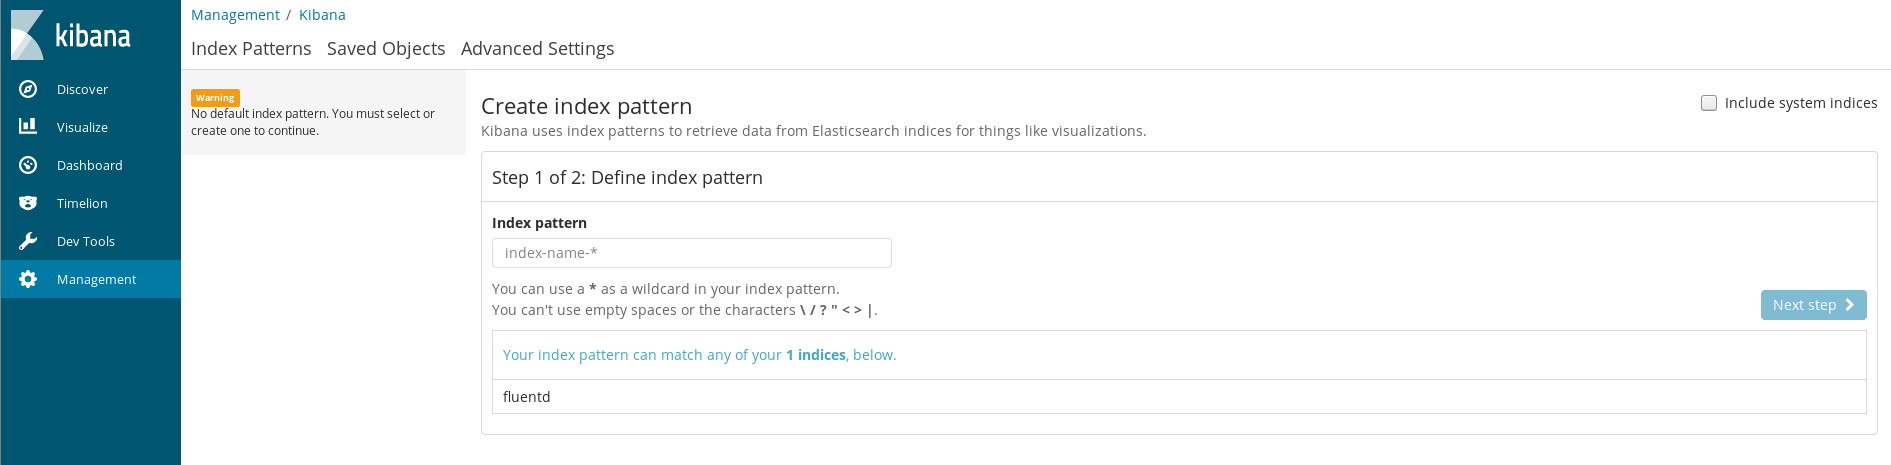 Kibana index pattern definition